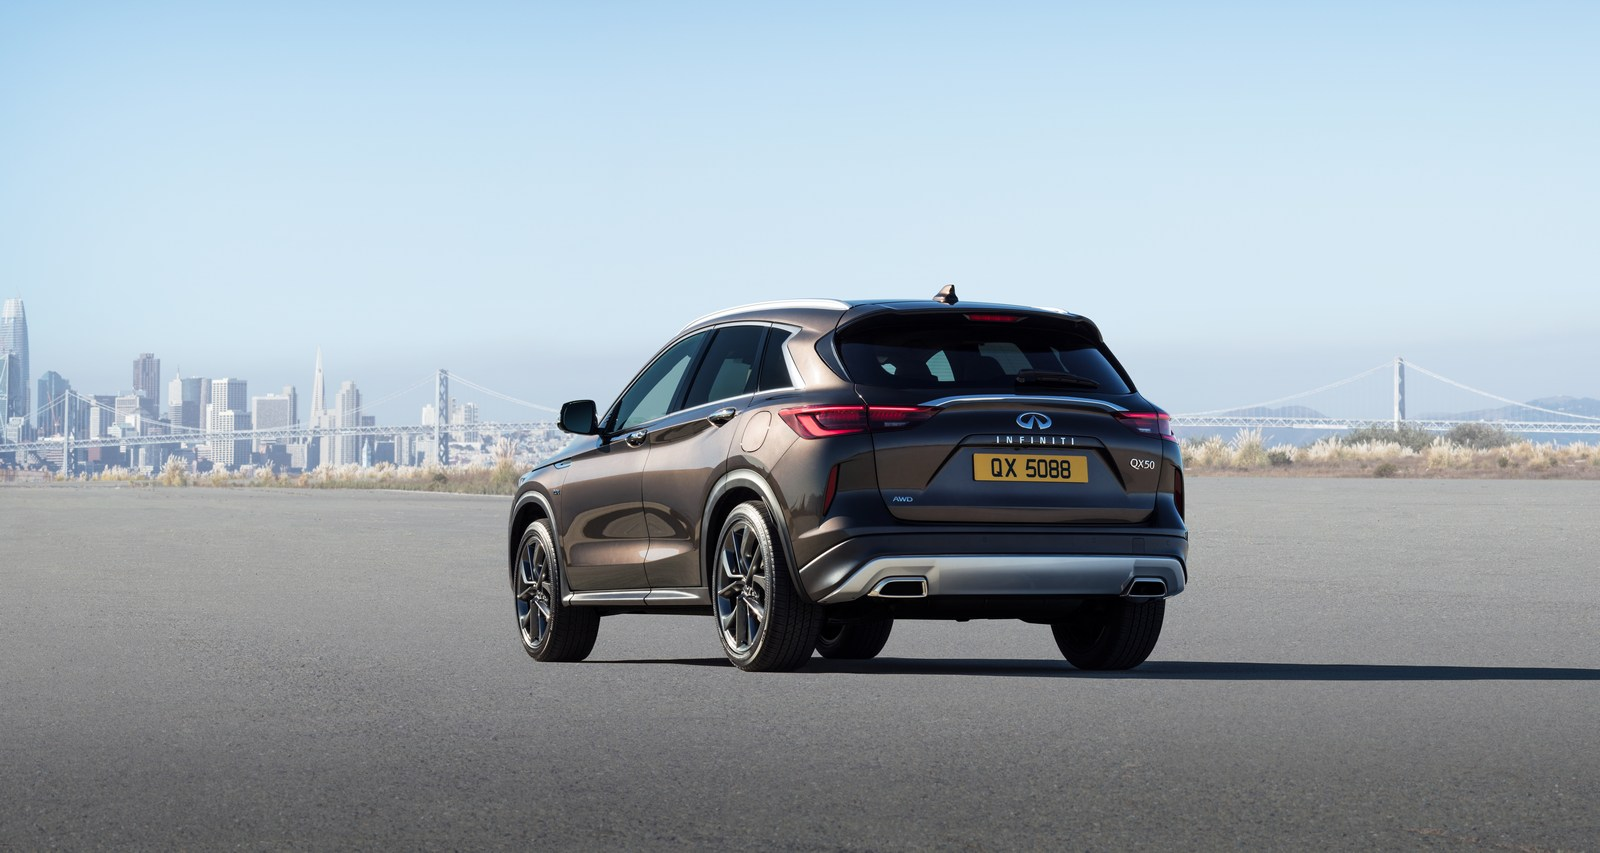 2019 infiniti qx50 bows in la with world 39 s first production variable compression engine carscoops. Black Bedroom Furniture Sets. Home Design Ideas